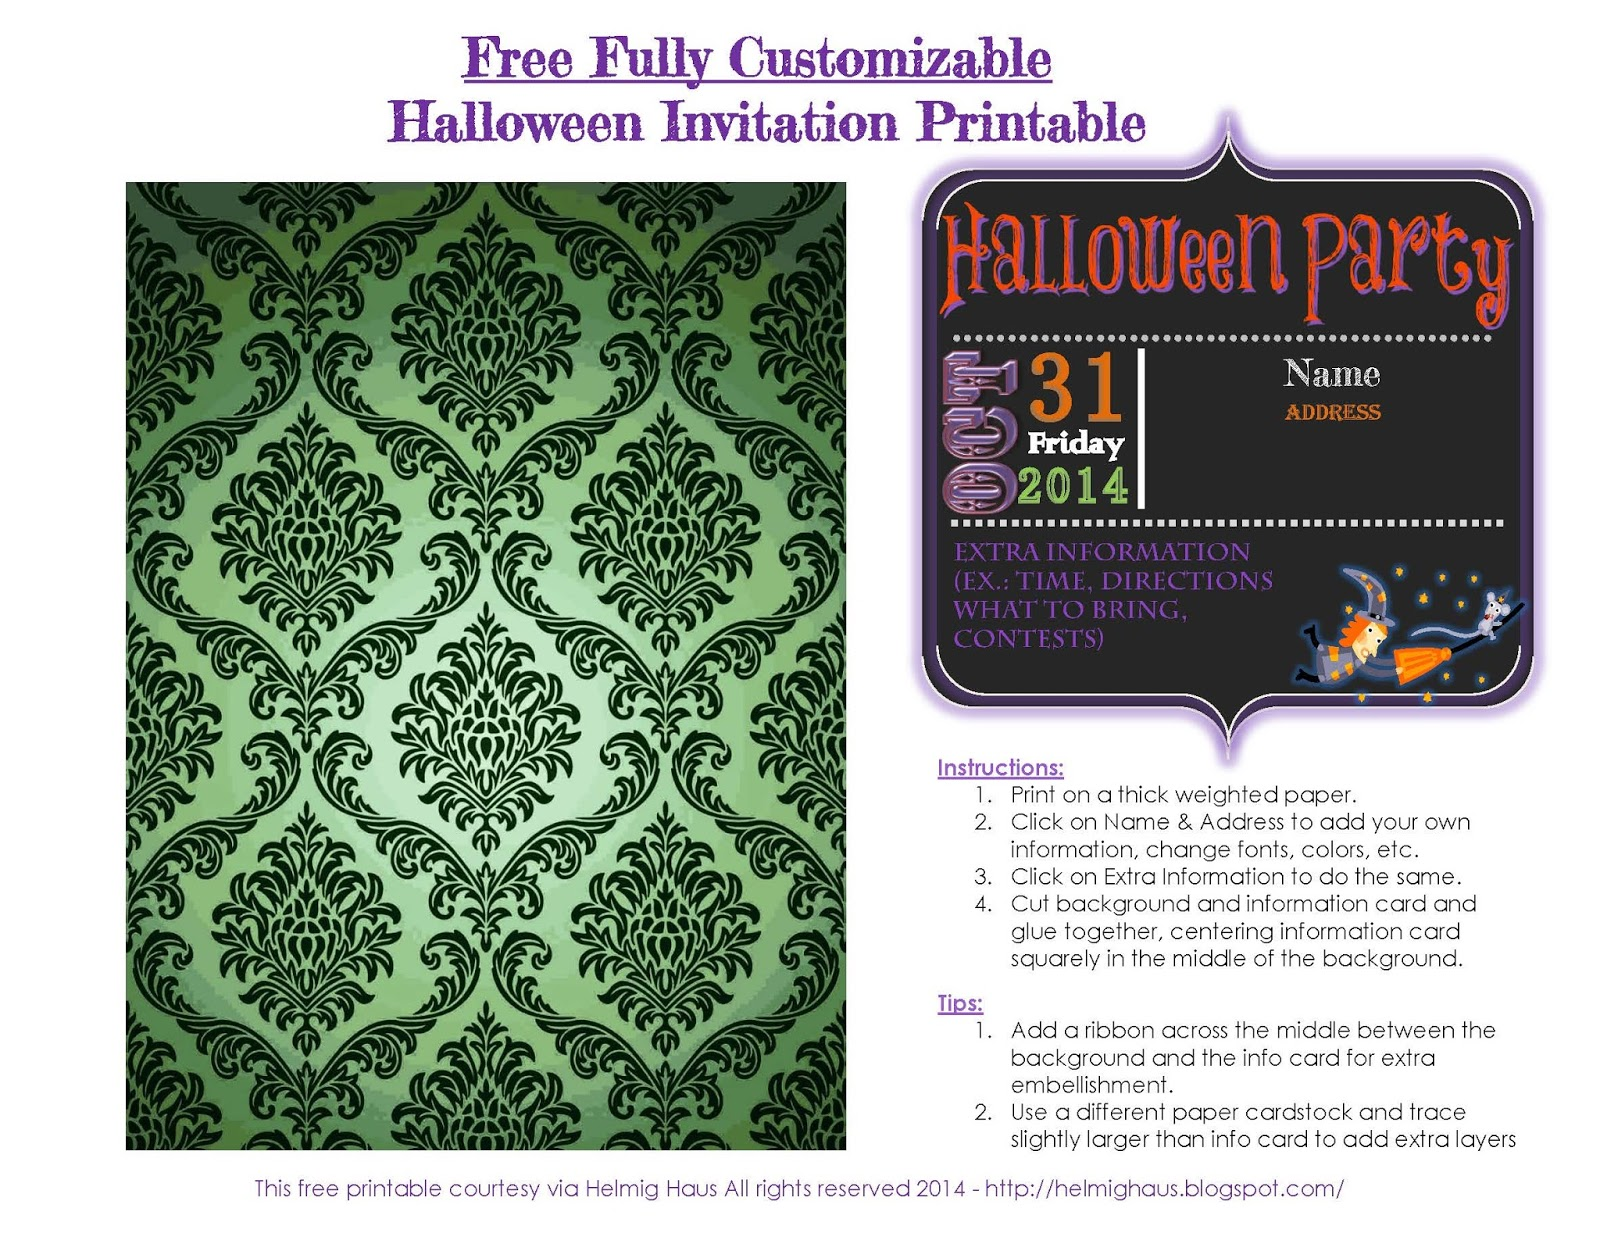 Free Halloween Invitation Printable via Helmig Haus   http://helmighaus.blogspot.com/